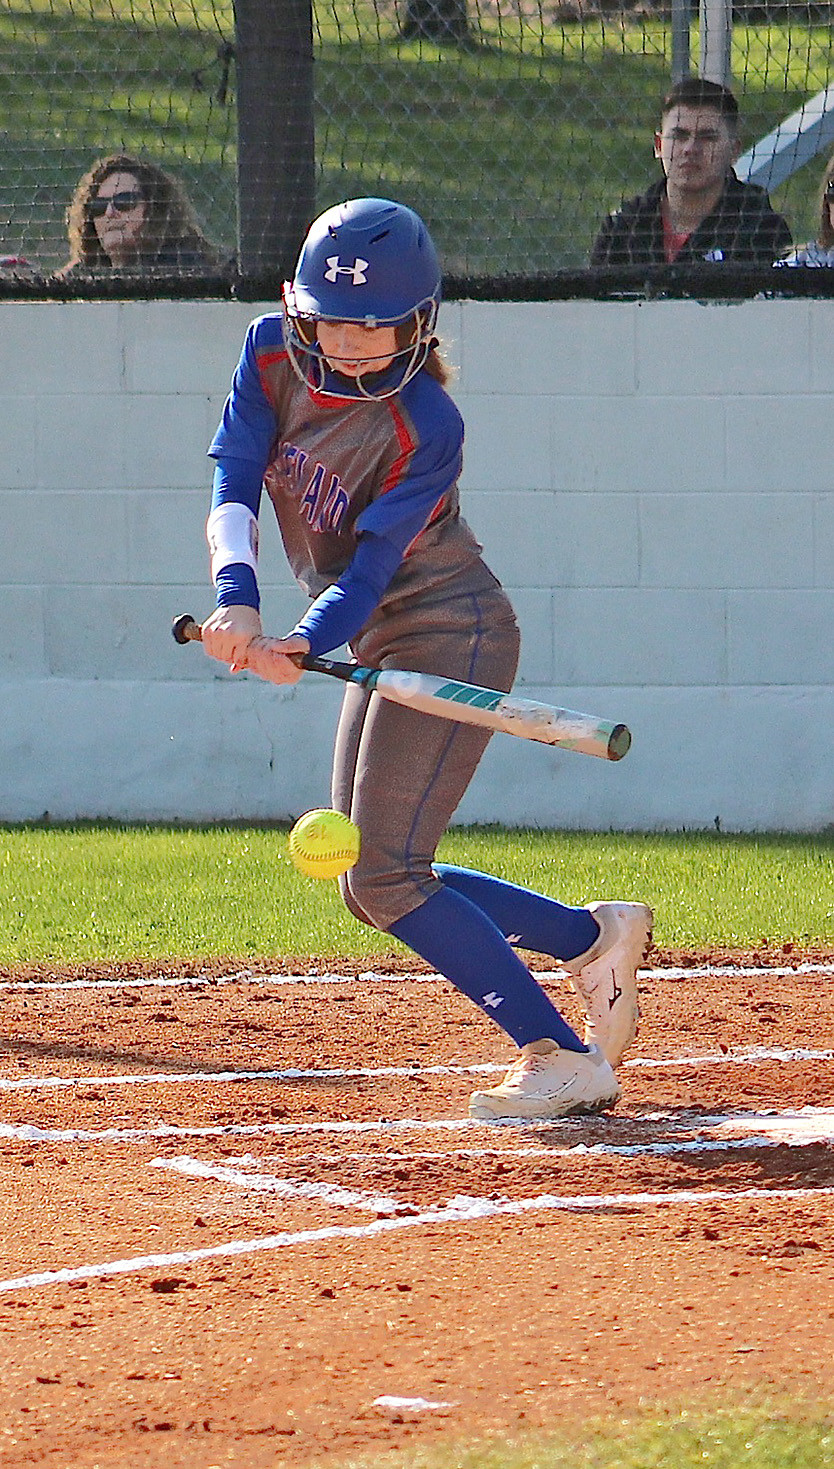 CLEVELAND'S Kayla Davenport fouls off a pitch against Rhea County at Cleveland on Tuesday afternoon.